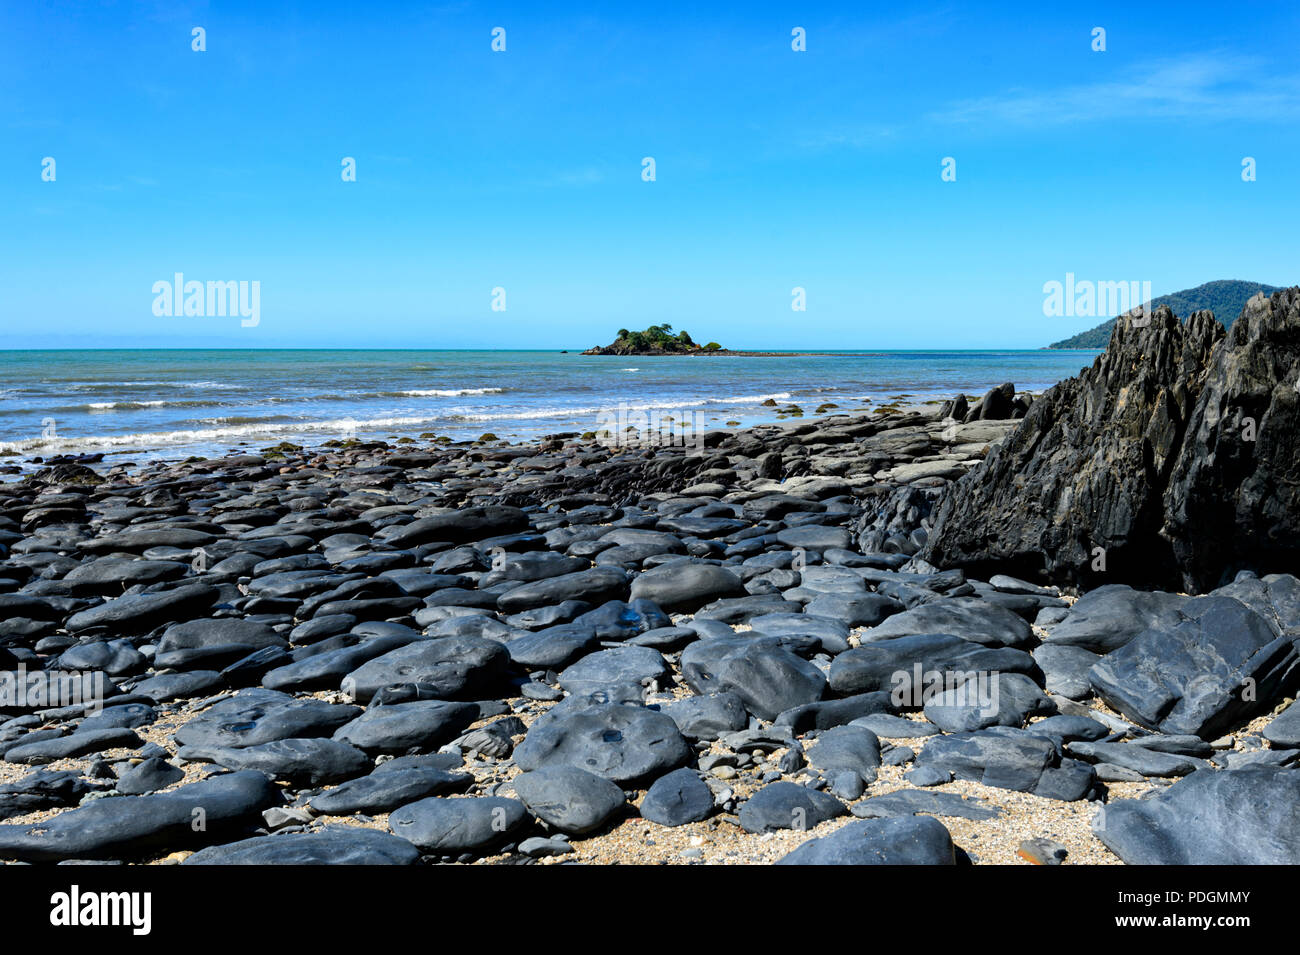 Rocky Coastline at Thornton Beach, Daintree National Park, Cape Tribulation, Far North Queensland, FNQ, QLD, Australia - Stock Image